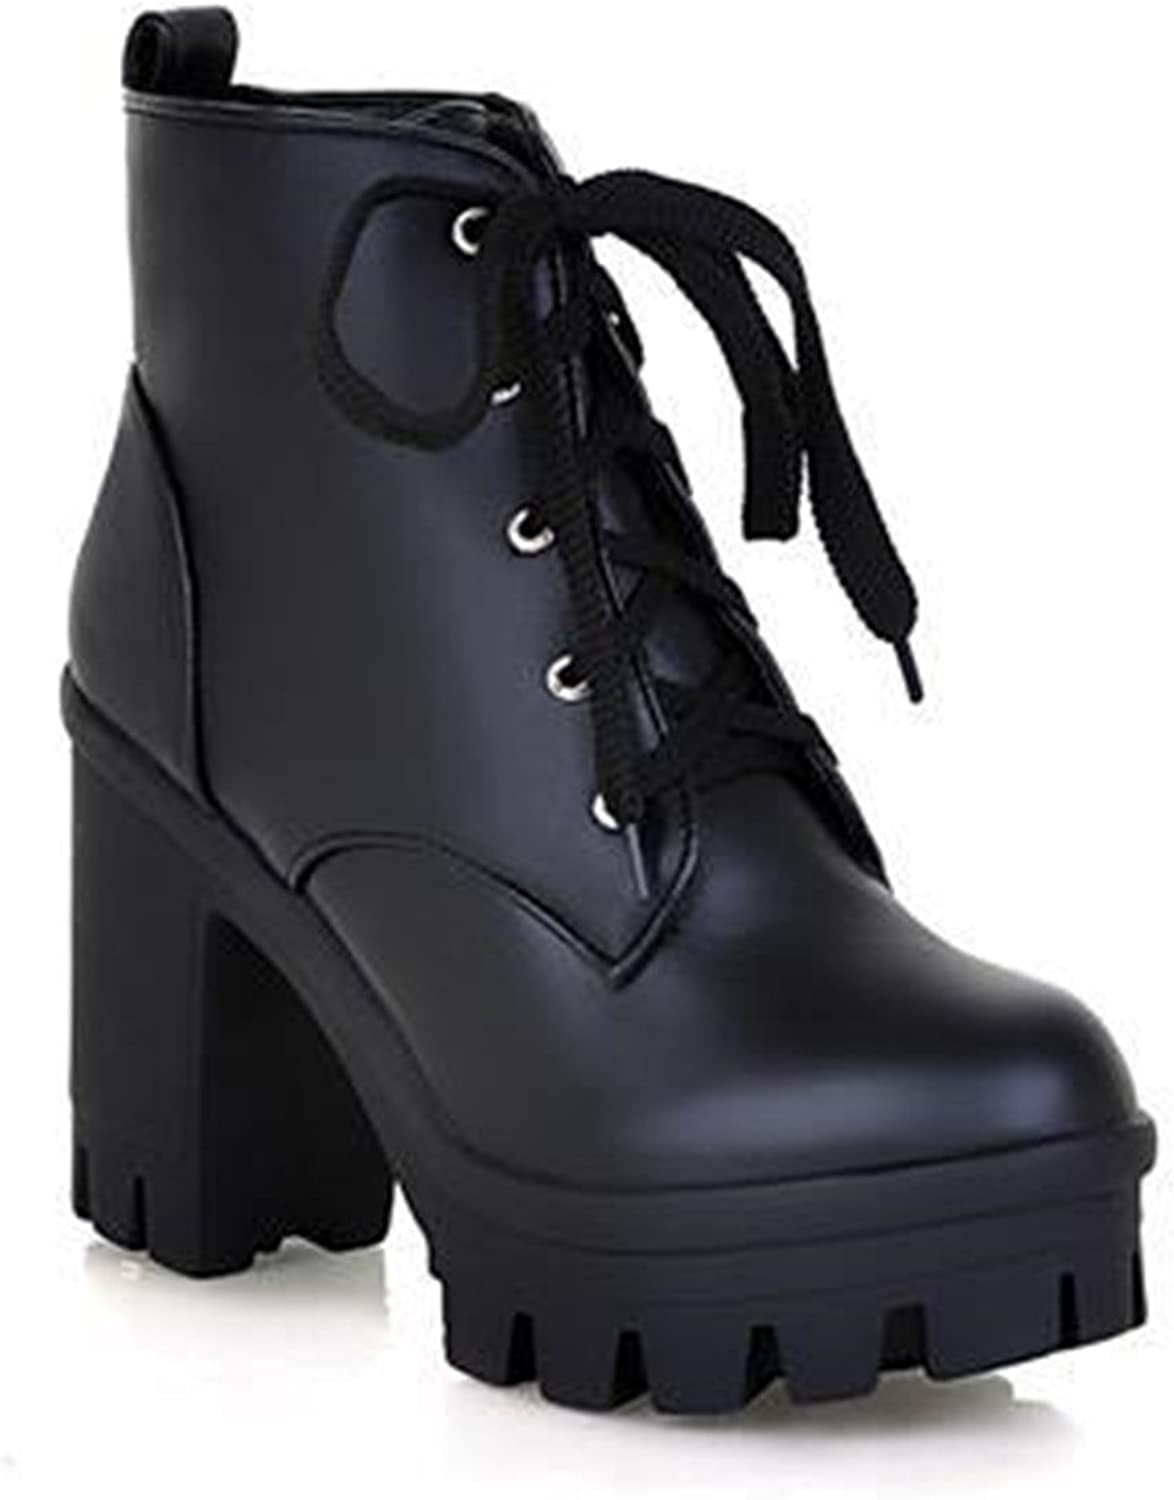 Marvin Cook Fashion Sexy Women's Ankle Boots Lace Up High Heels Punk Platform Autumn Winter Snow Boots